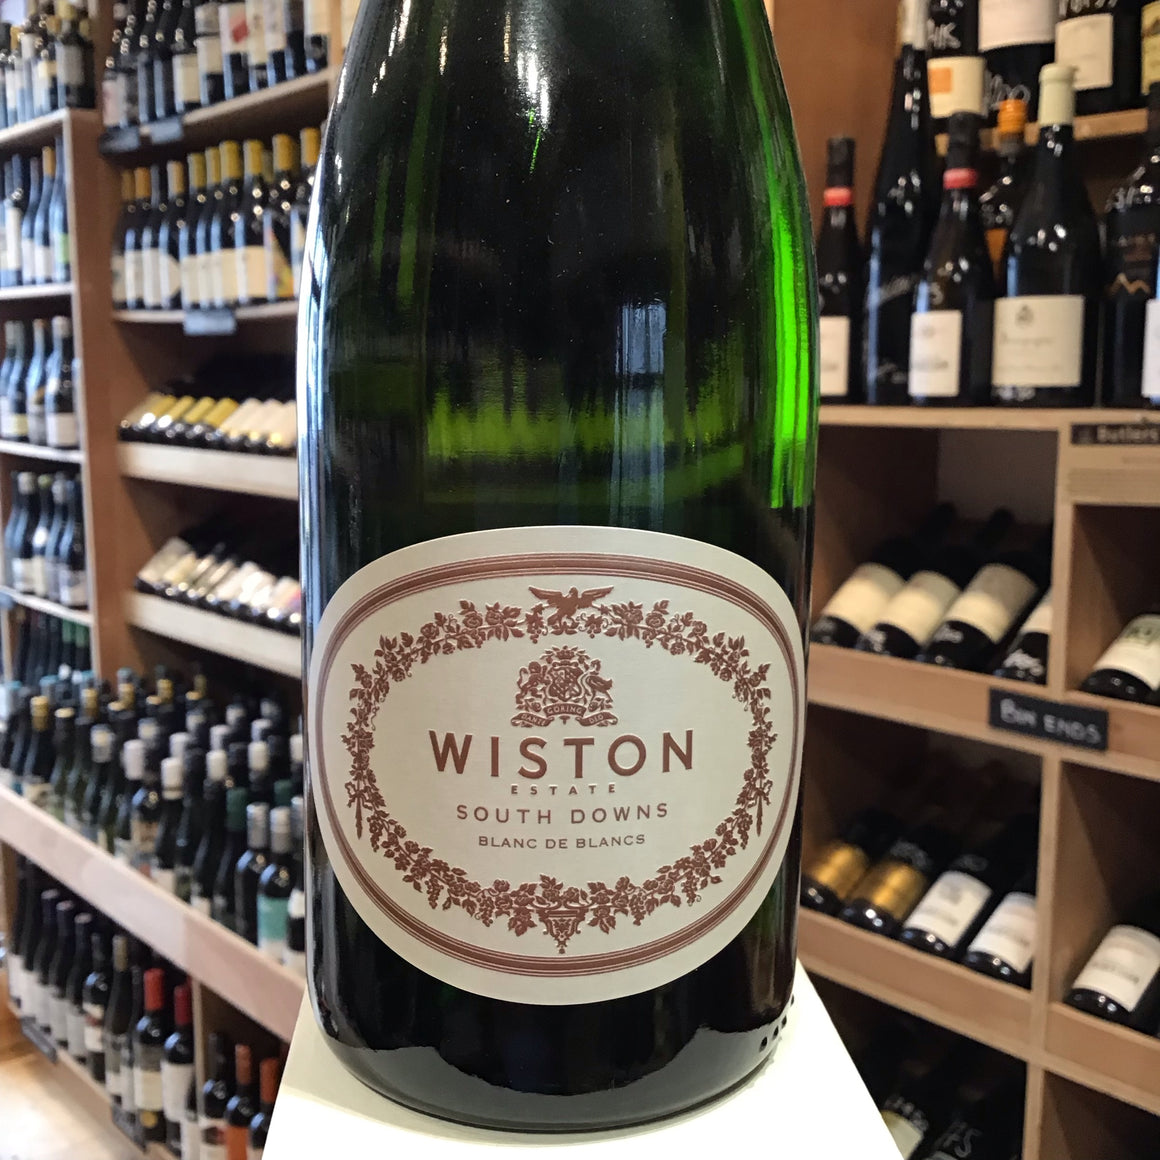 Wiston Estate Blanc de Blancs 2011 - Butlers Wine Cellar Brighton